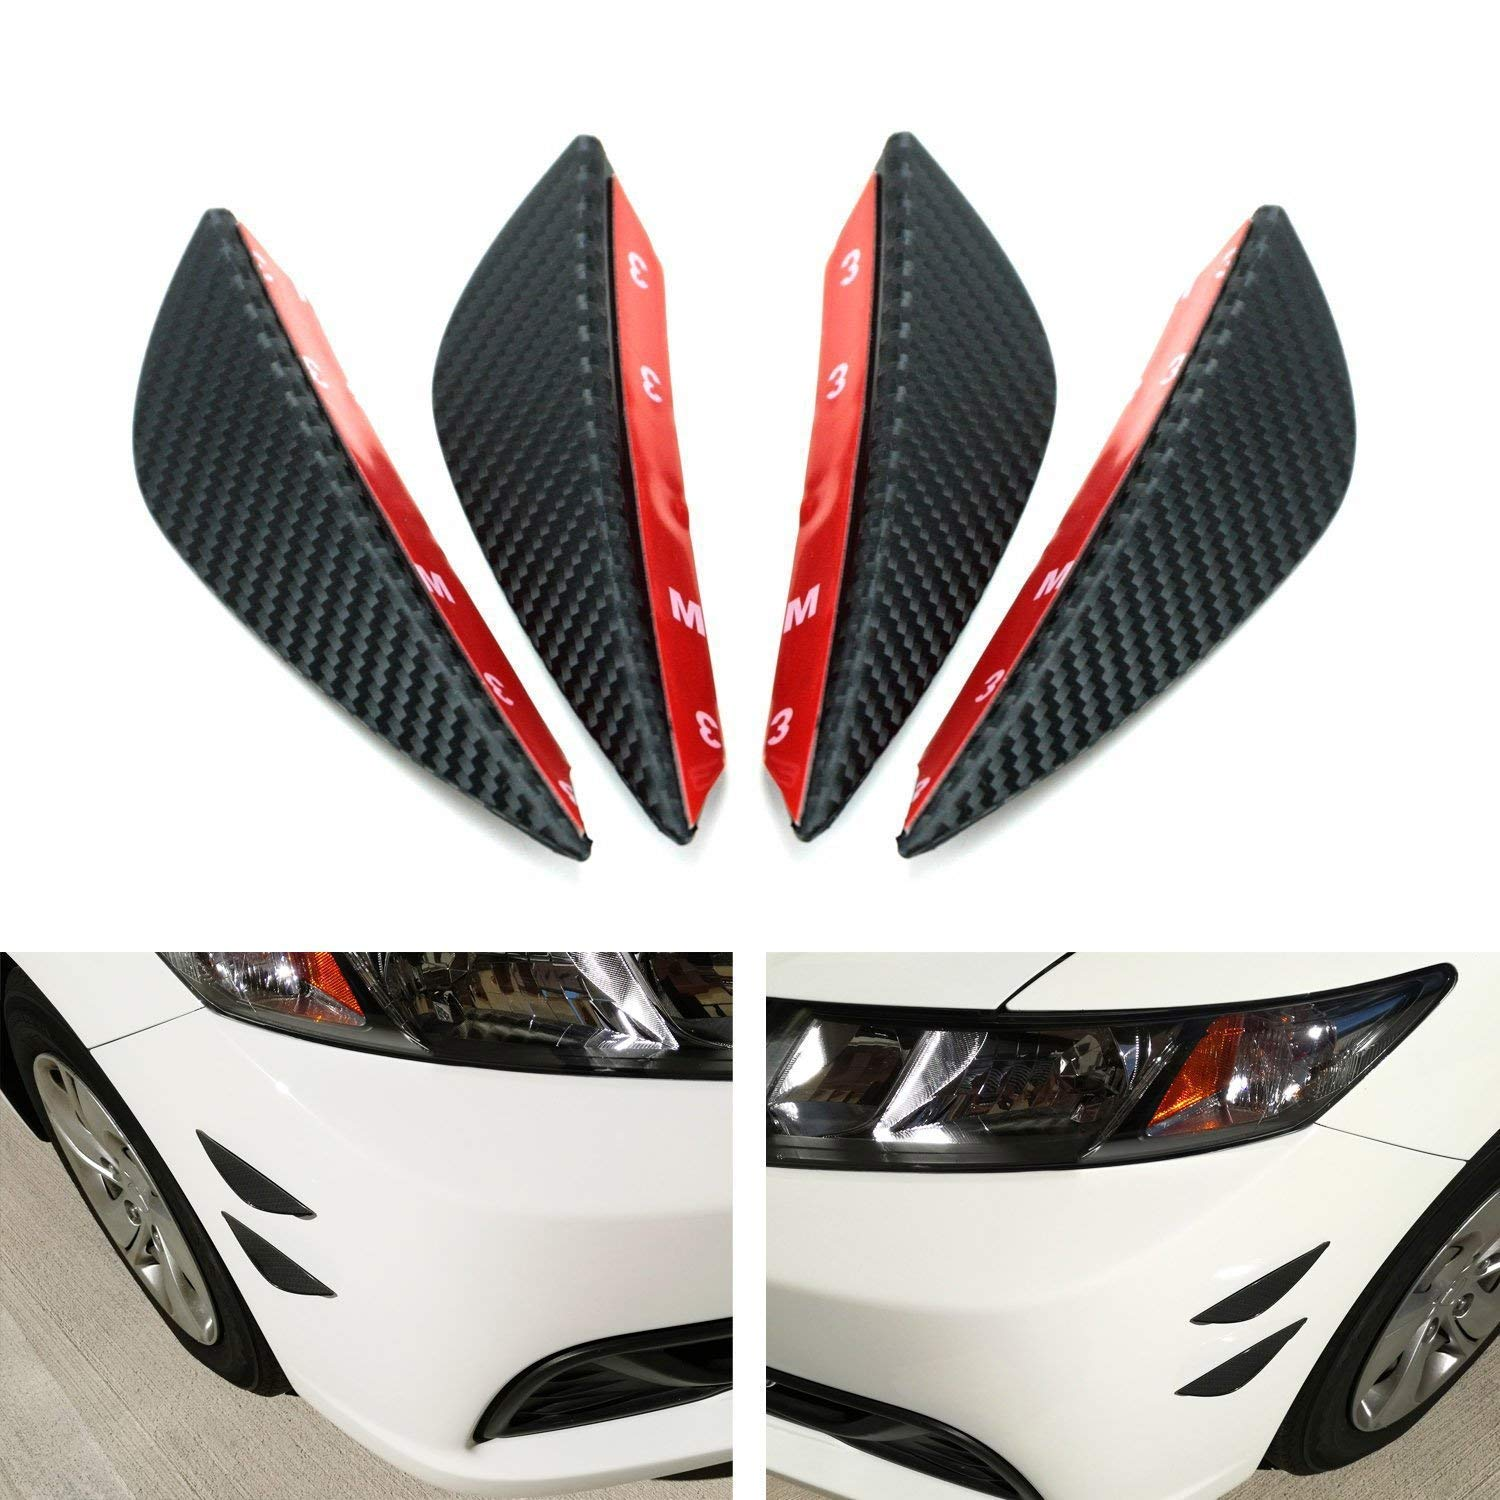 iJDMTOY 4pcs Black Gloss FinishCarbon Fiber Patten Front Bumper Canards Universal Fit For Any Car Body Diffuser Fins